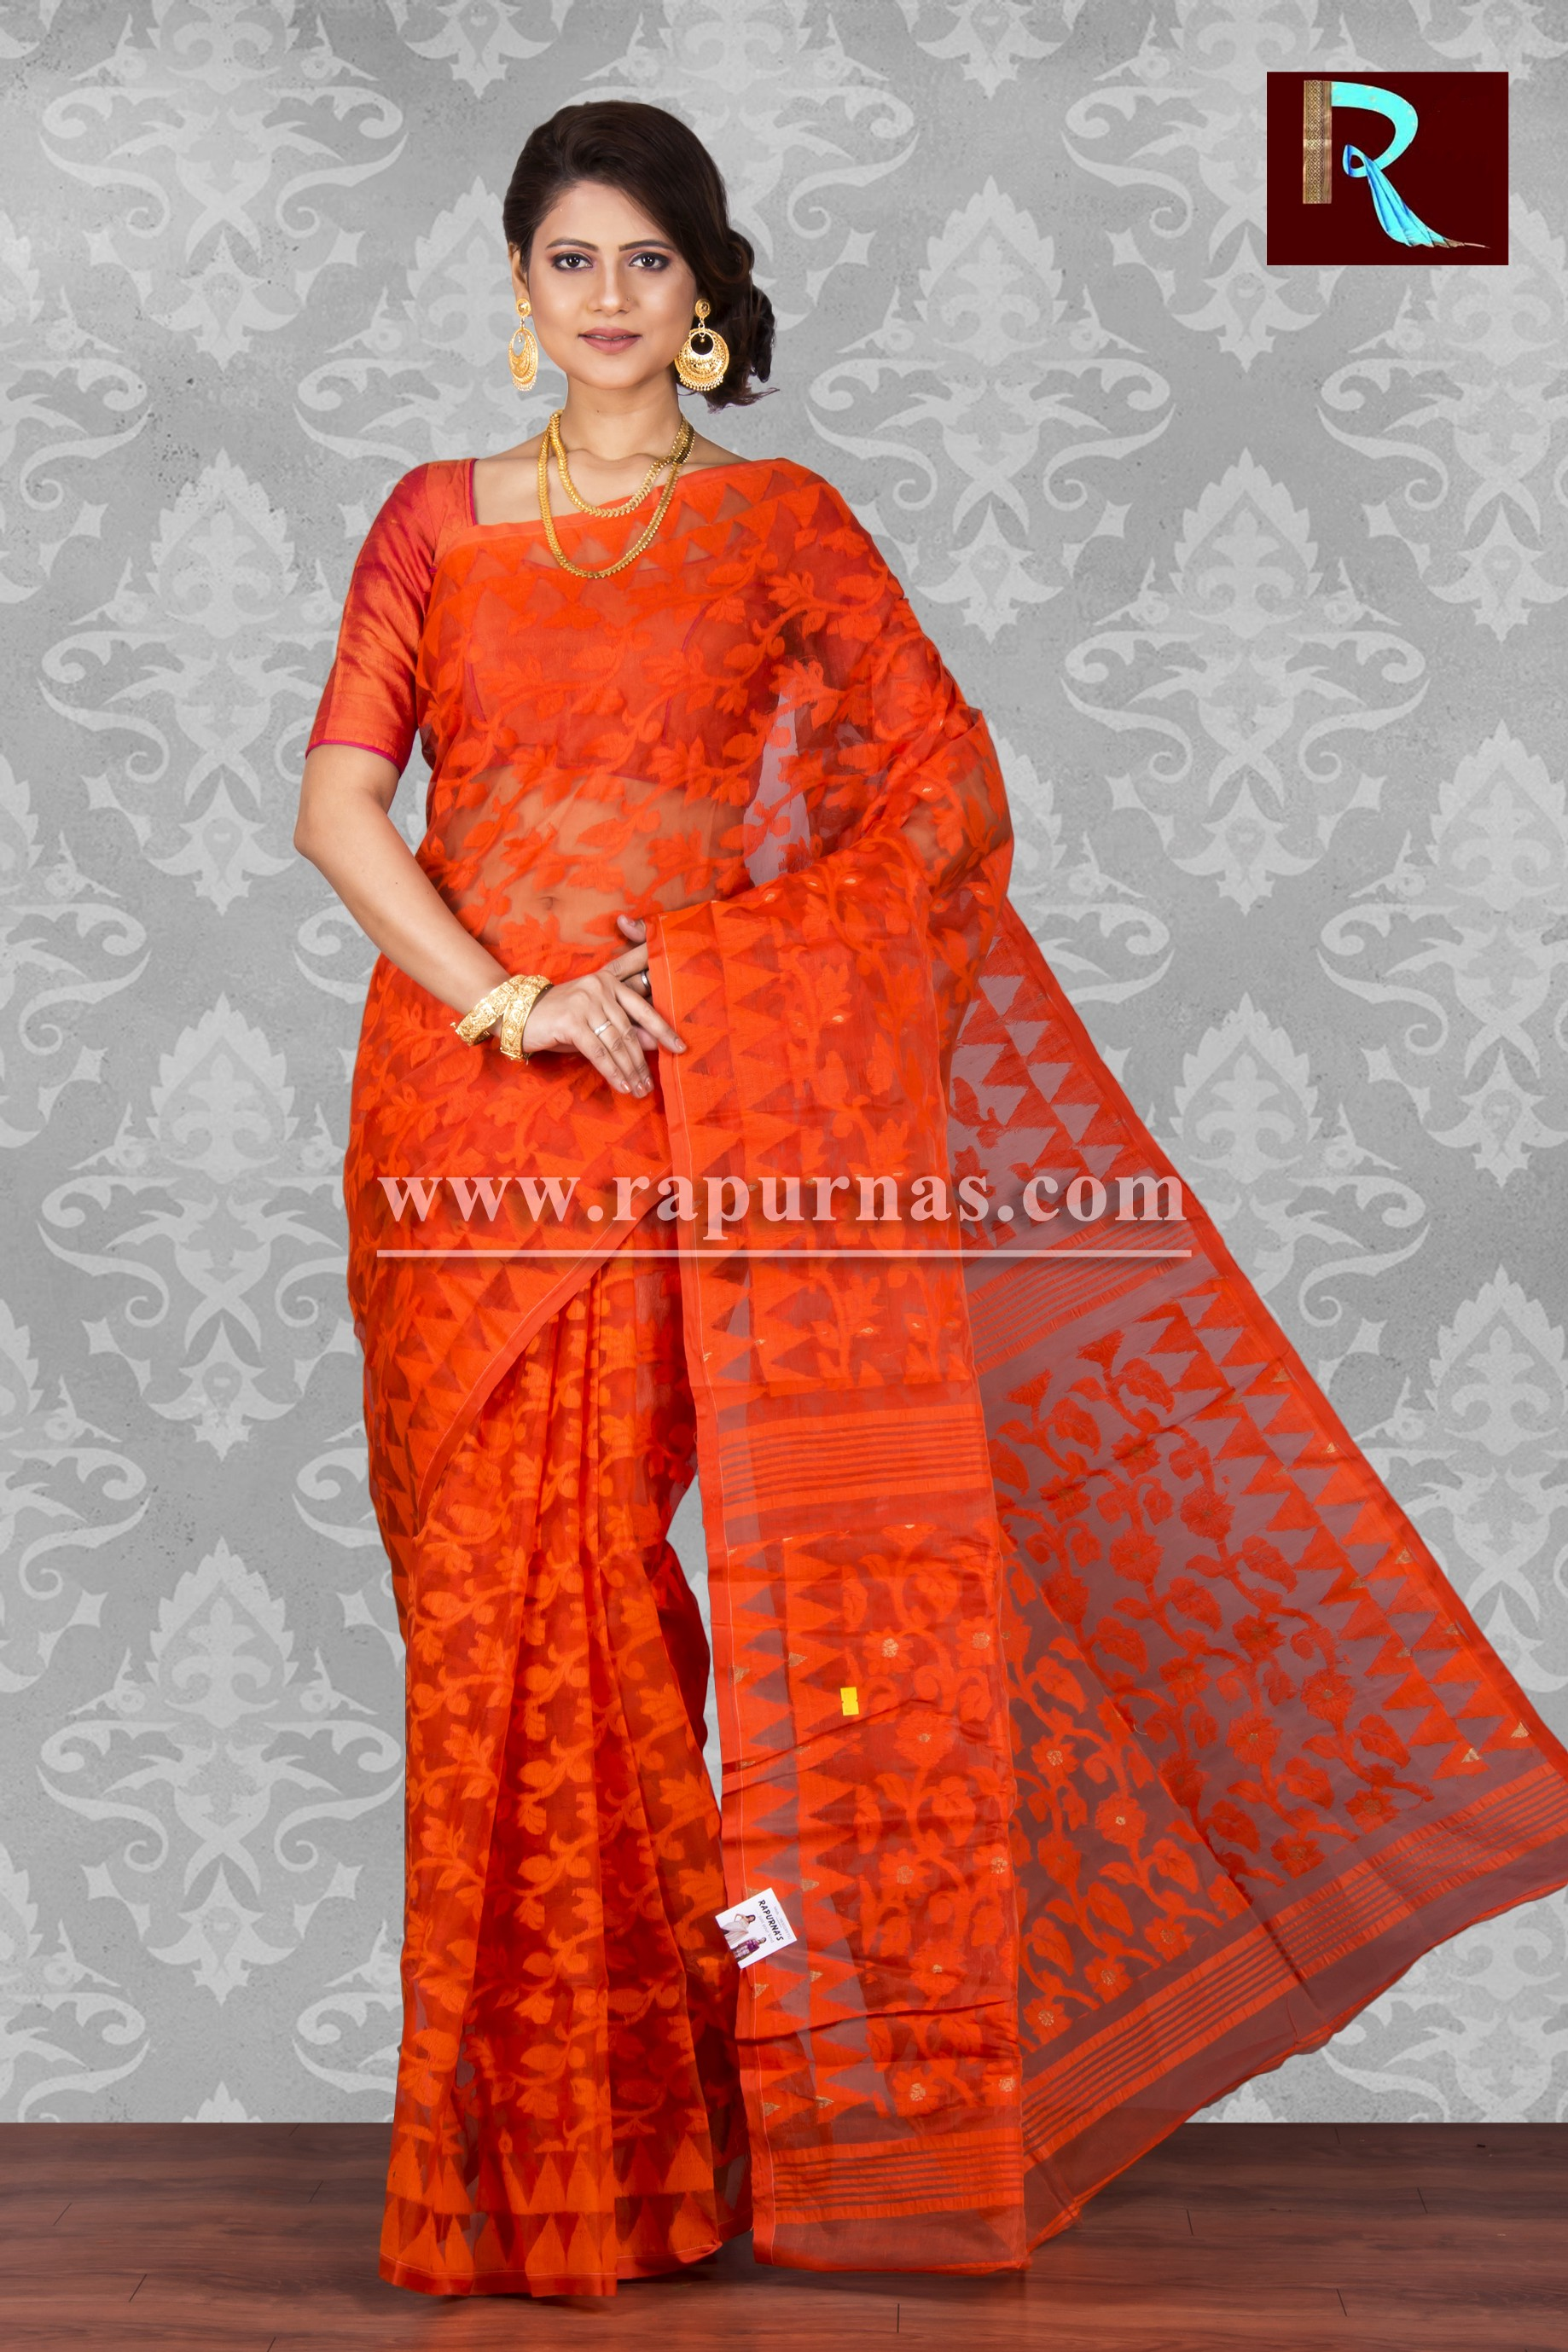 b744066901 Explore and shop outstanding stylish Jamdani Saree and Dhakai Jamdani Silk  sarees online at lowest prices with Rapurnas. Check our all new design ...